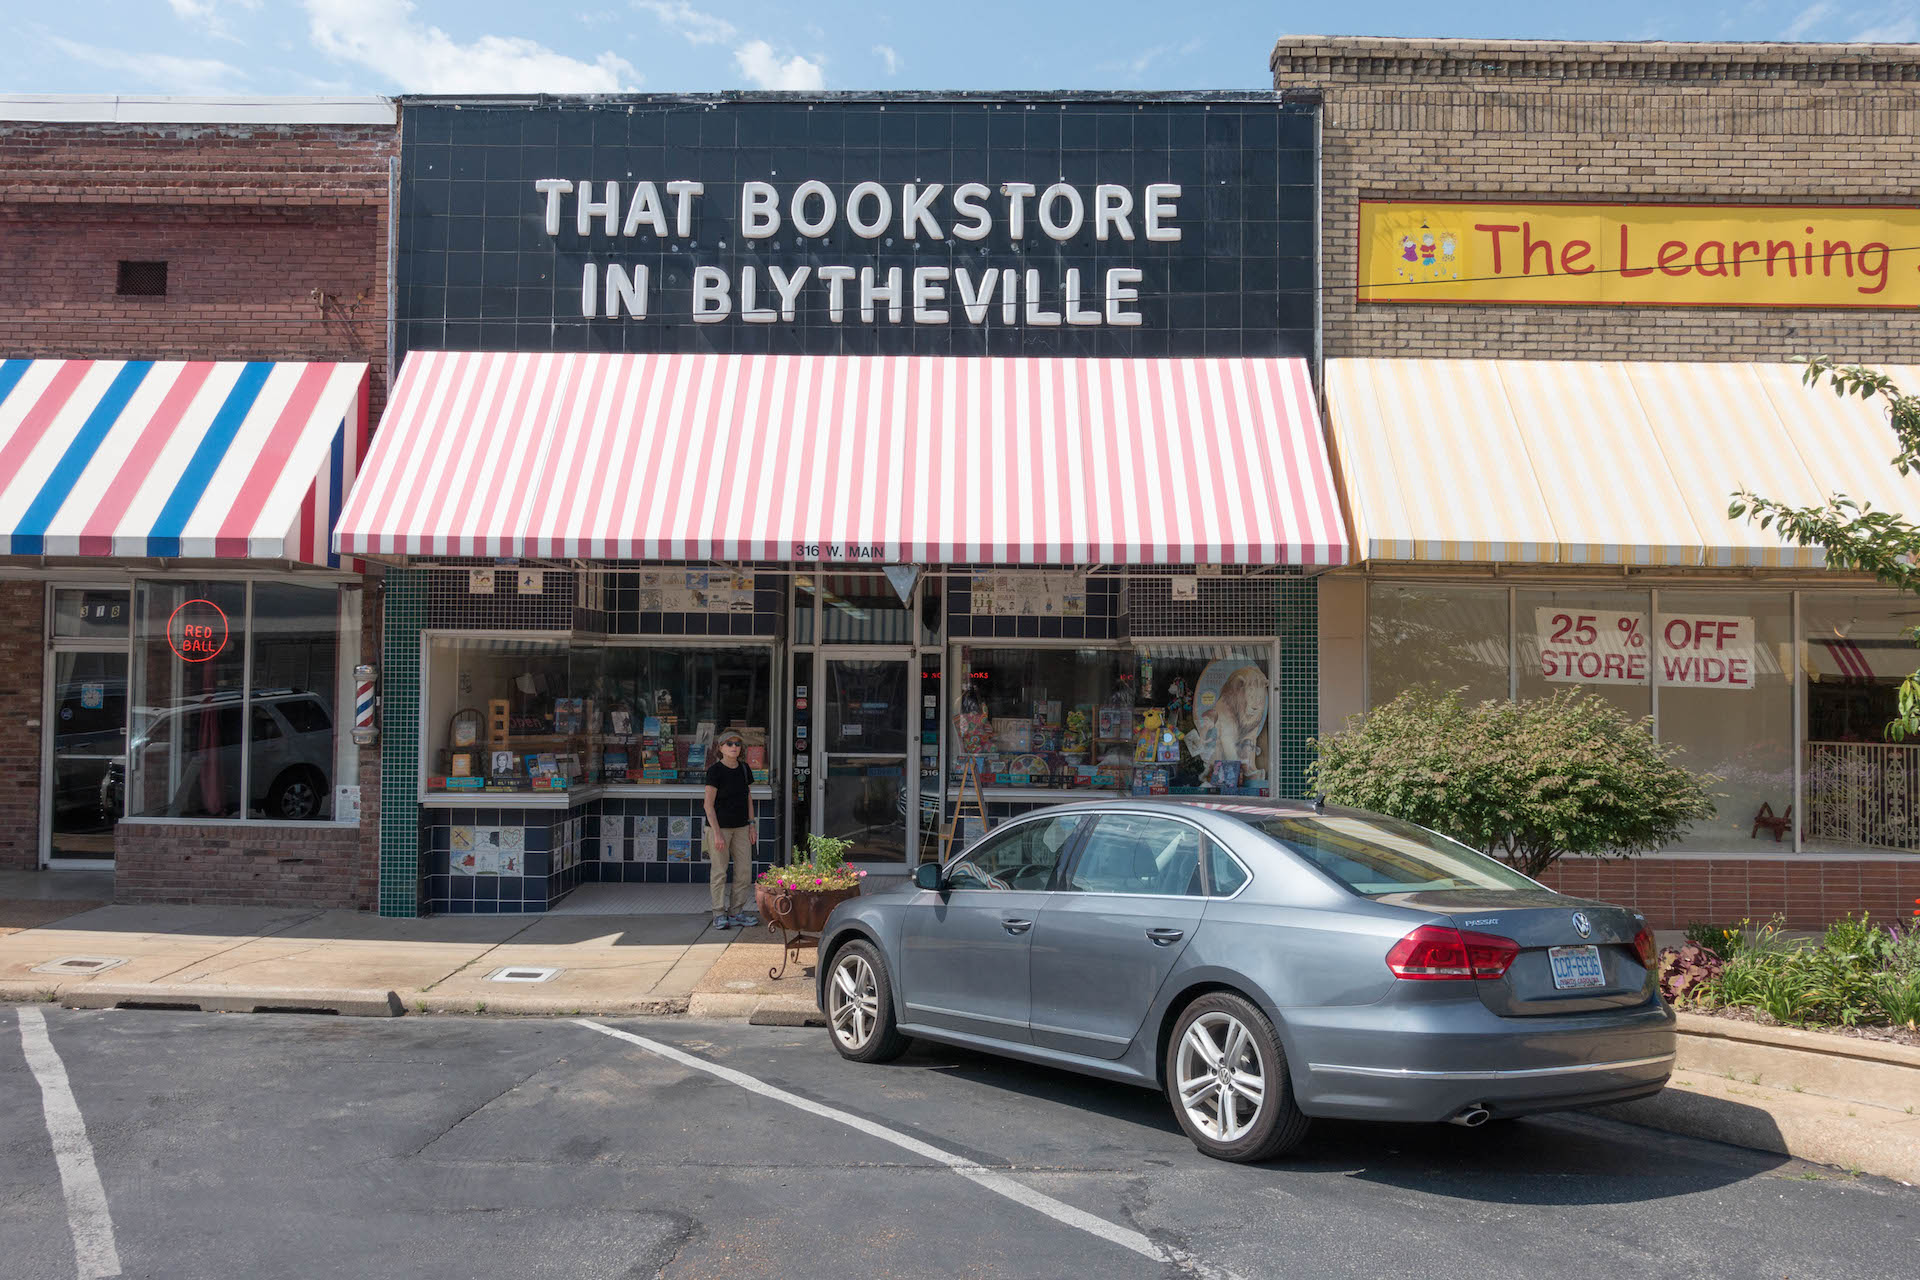 Street view of the bookstore